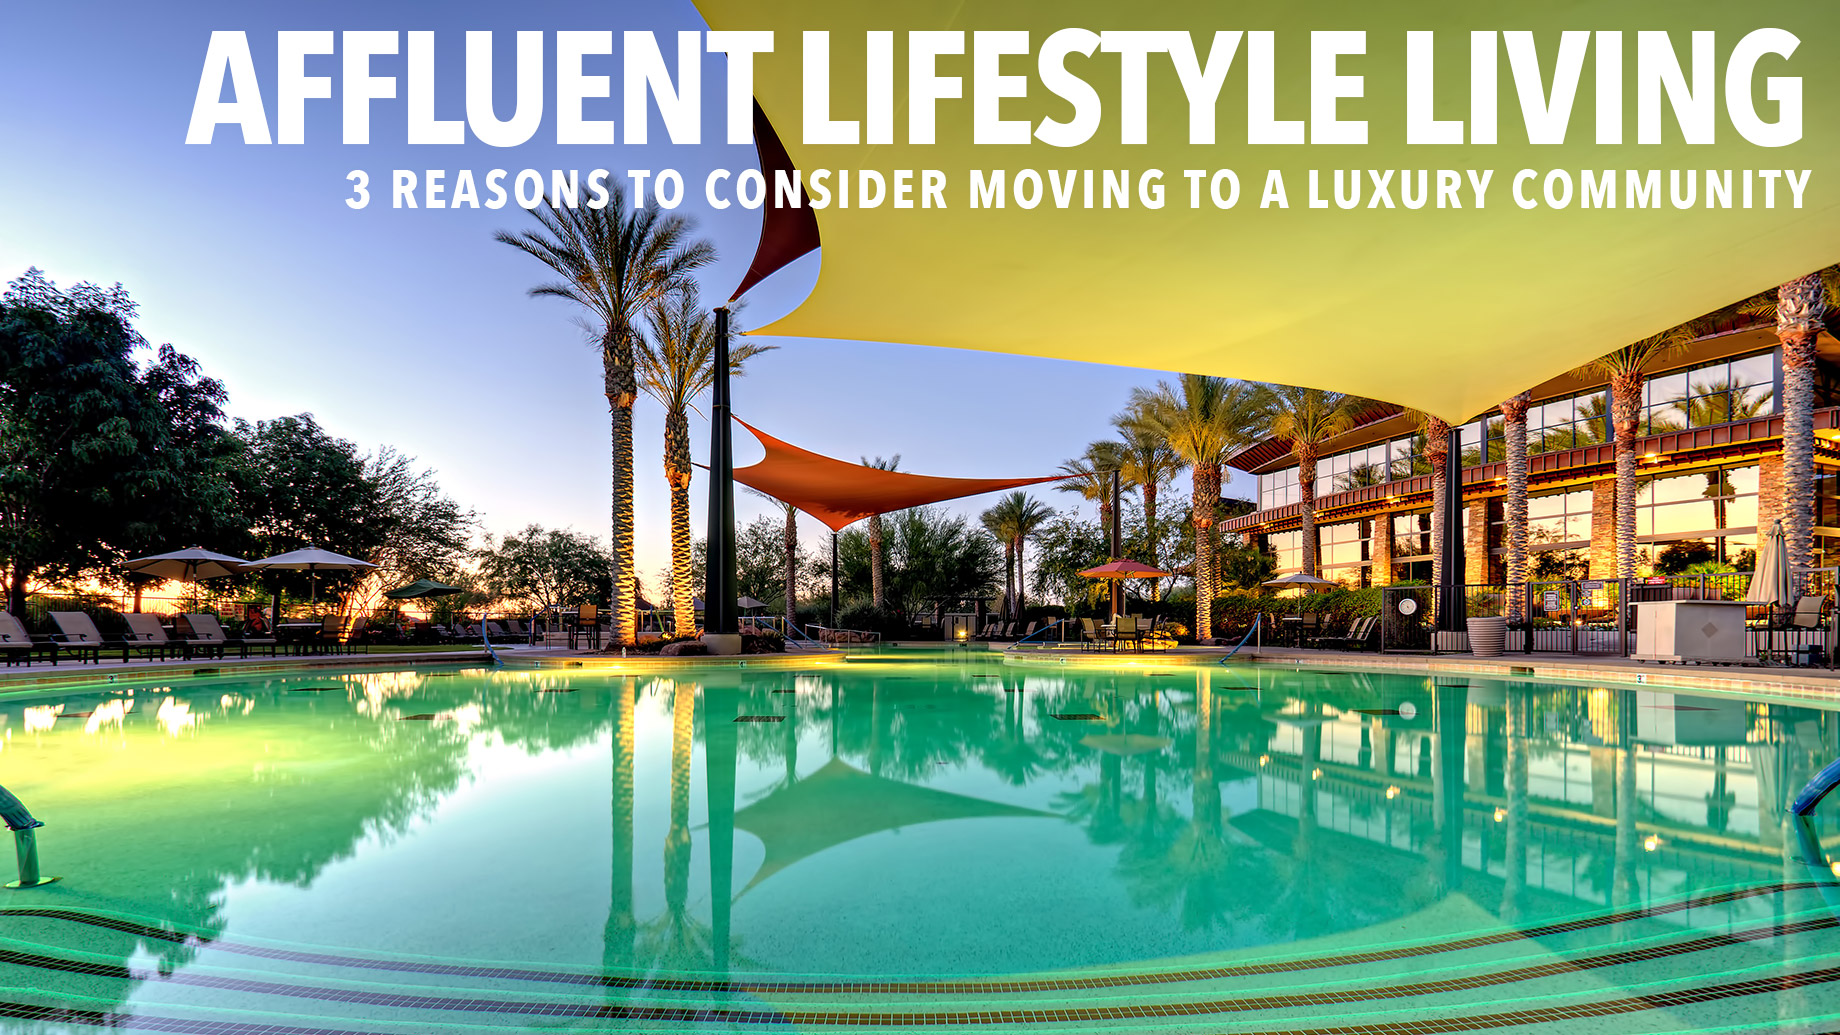 Affluent Lifestyle Living - 3 Reasons to Consider Moving to a Luxury Community